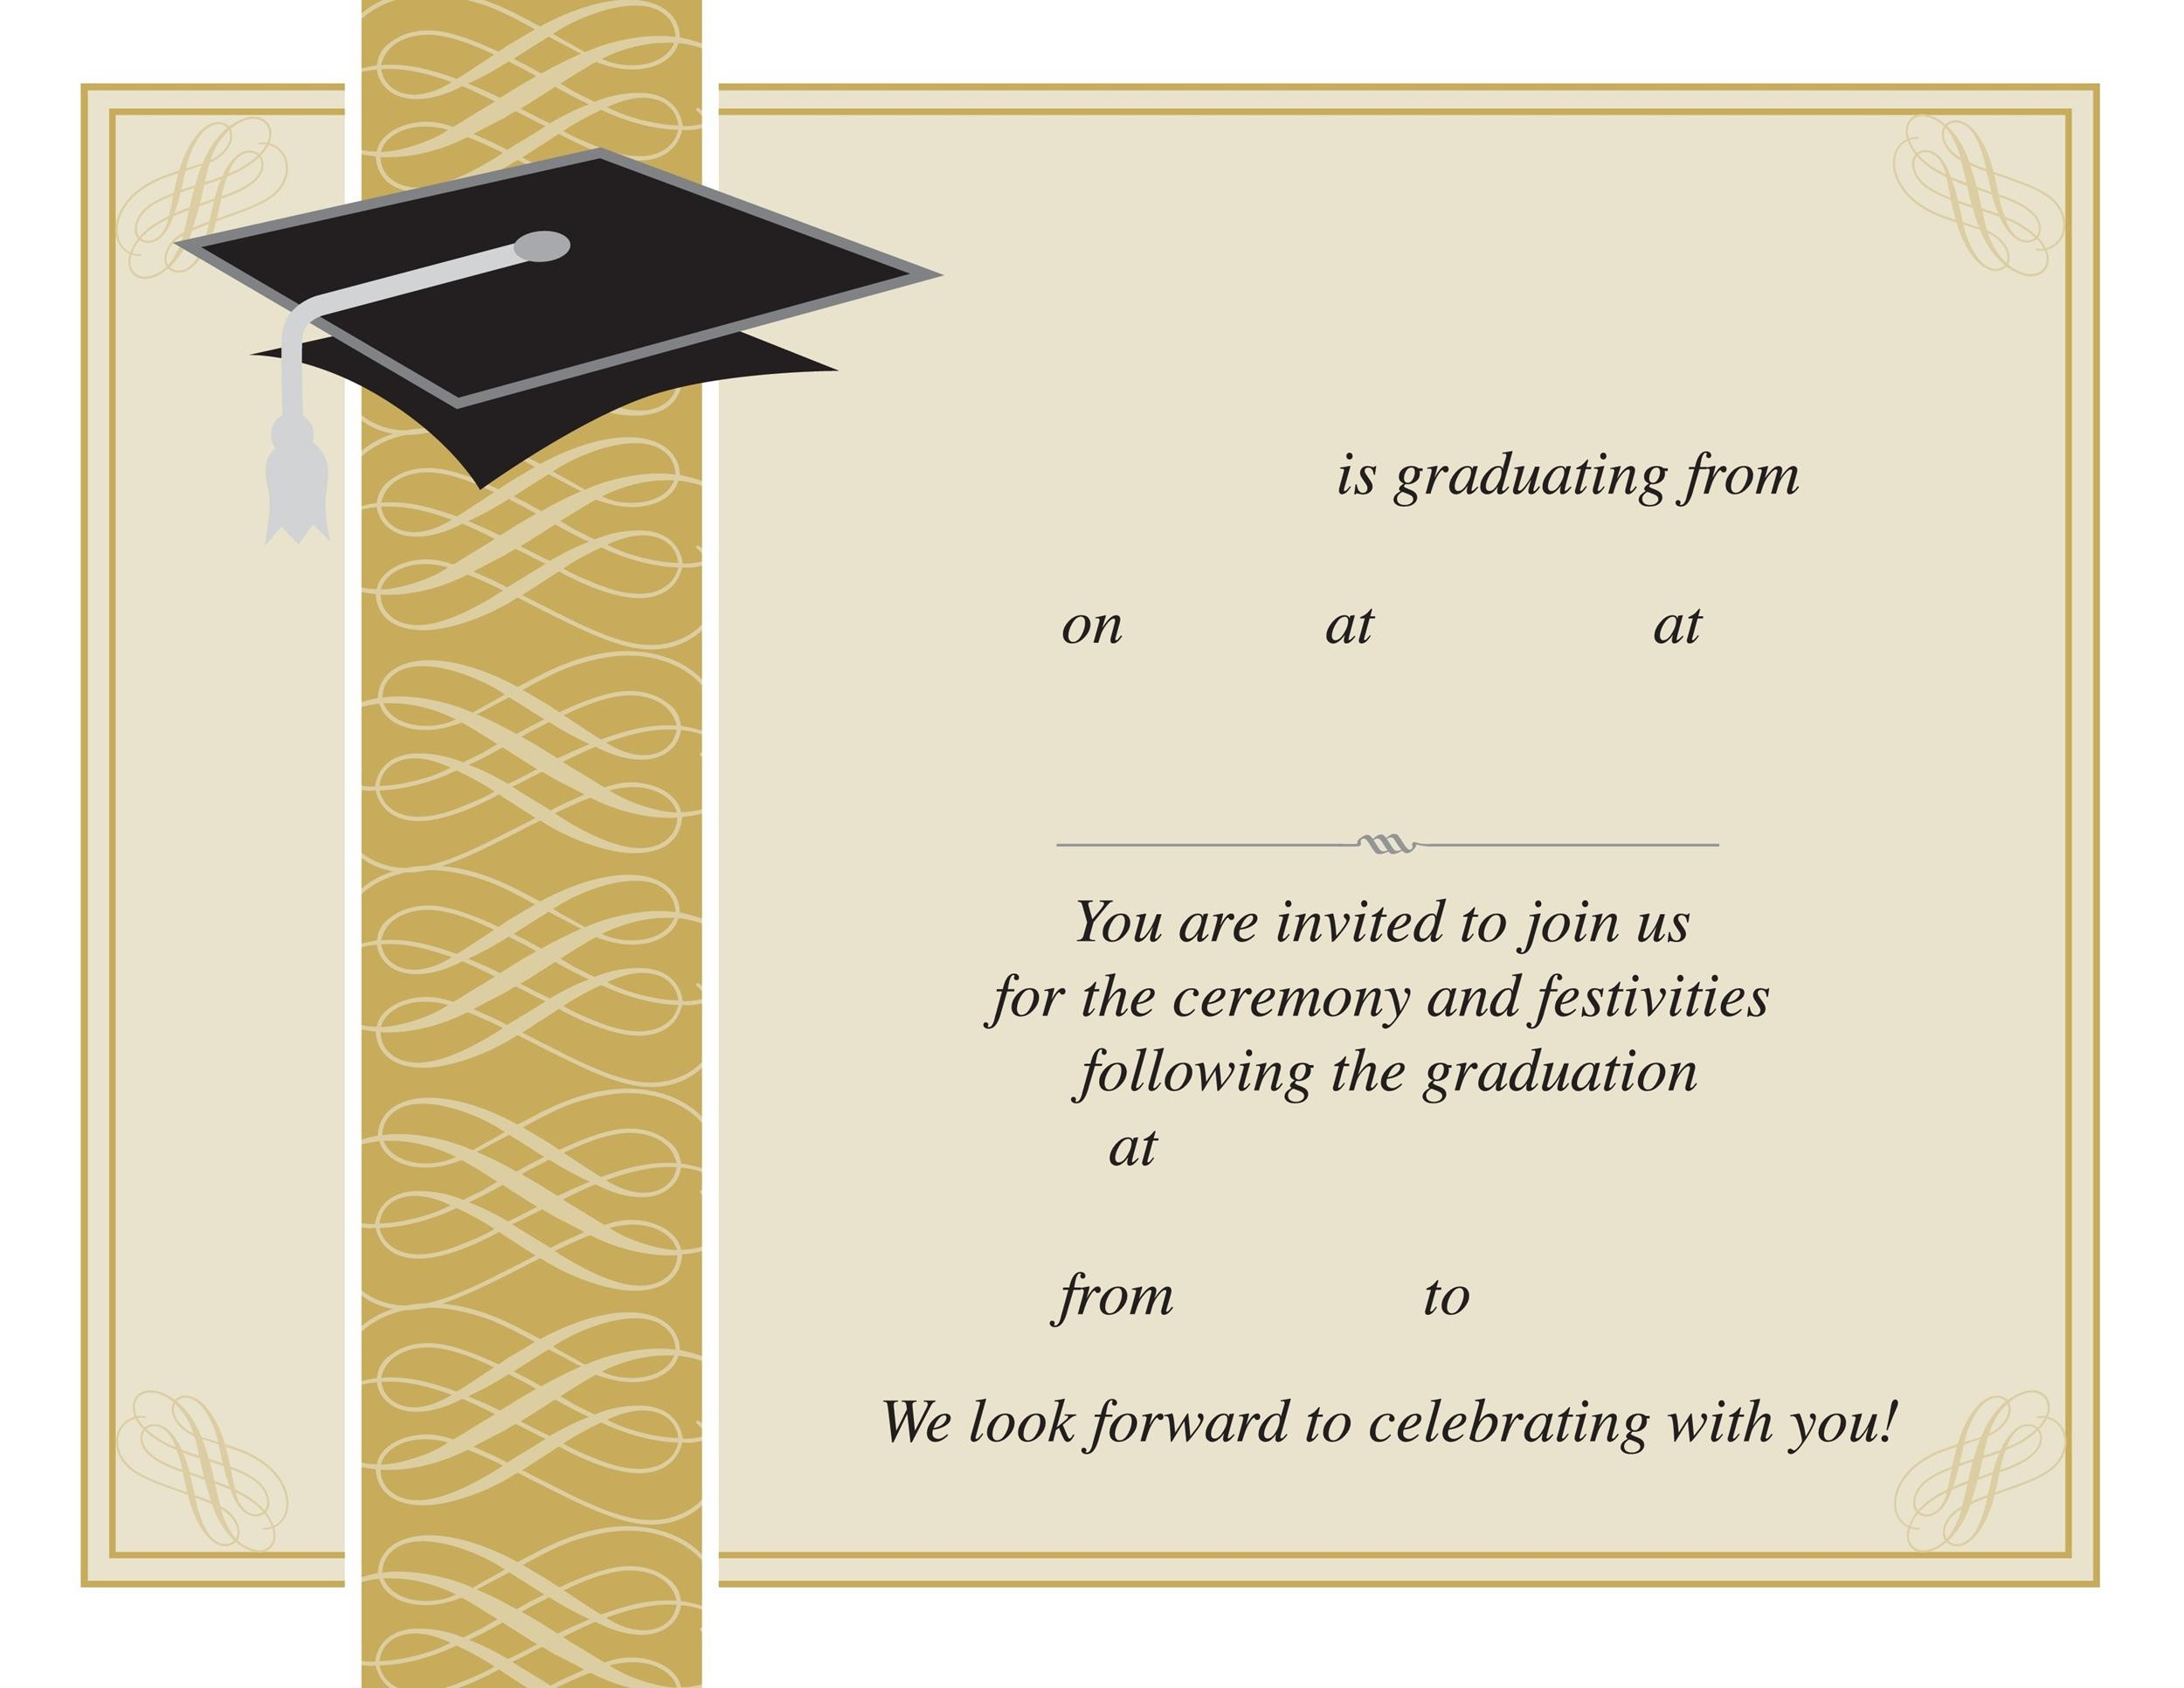 free graduation invitation templates 03 printable graduation invitation templates 03